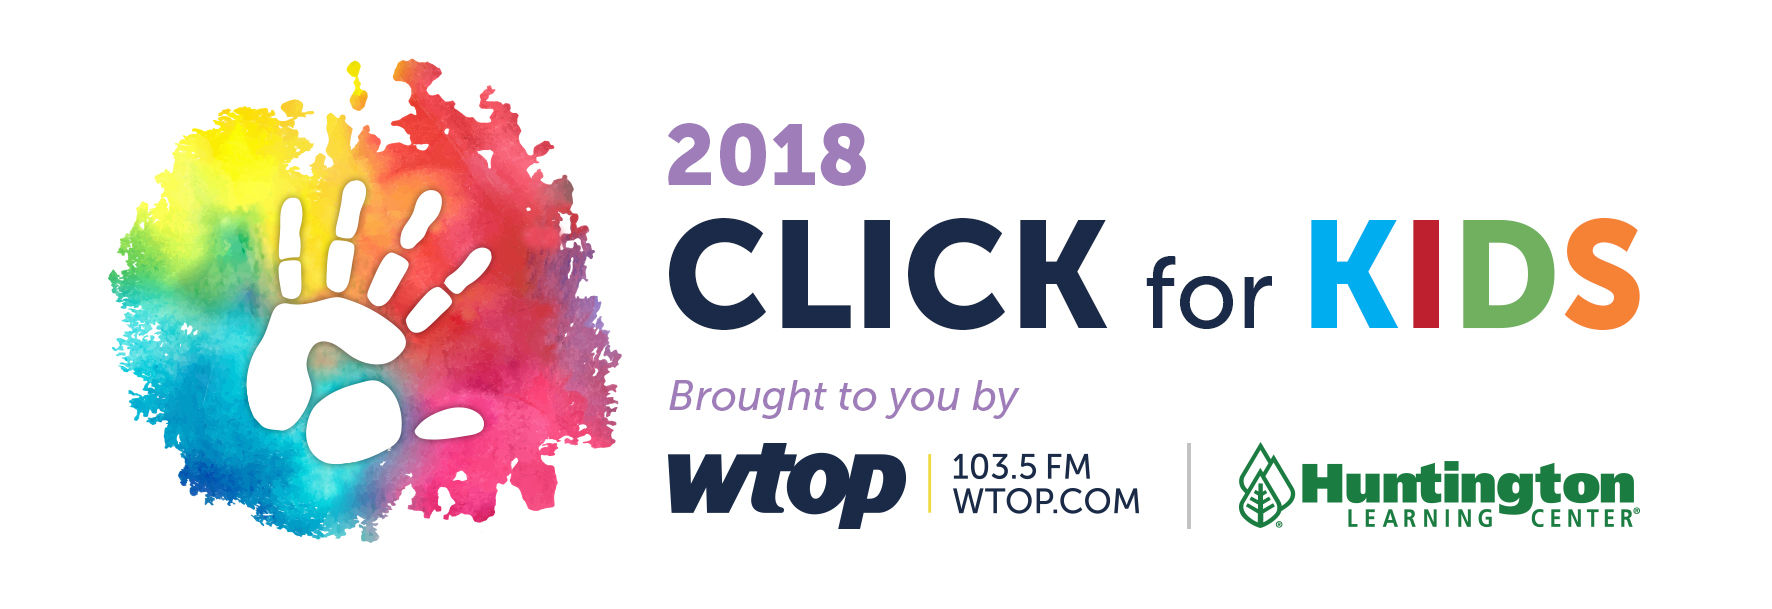 2018 Click for Kids Voting | WTOP